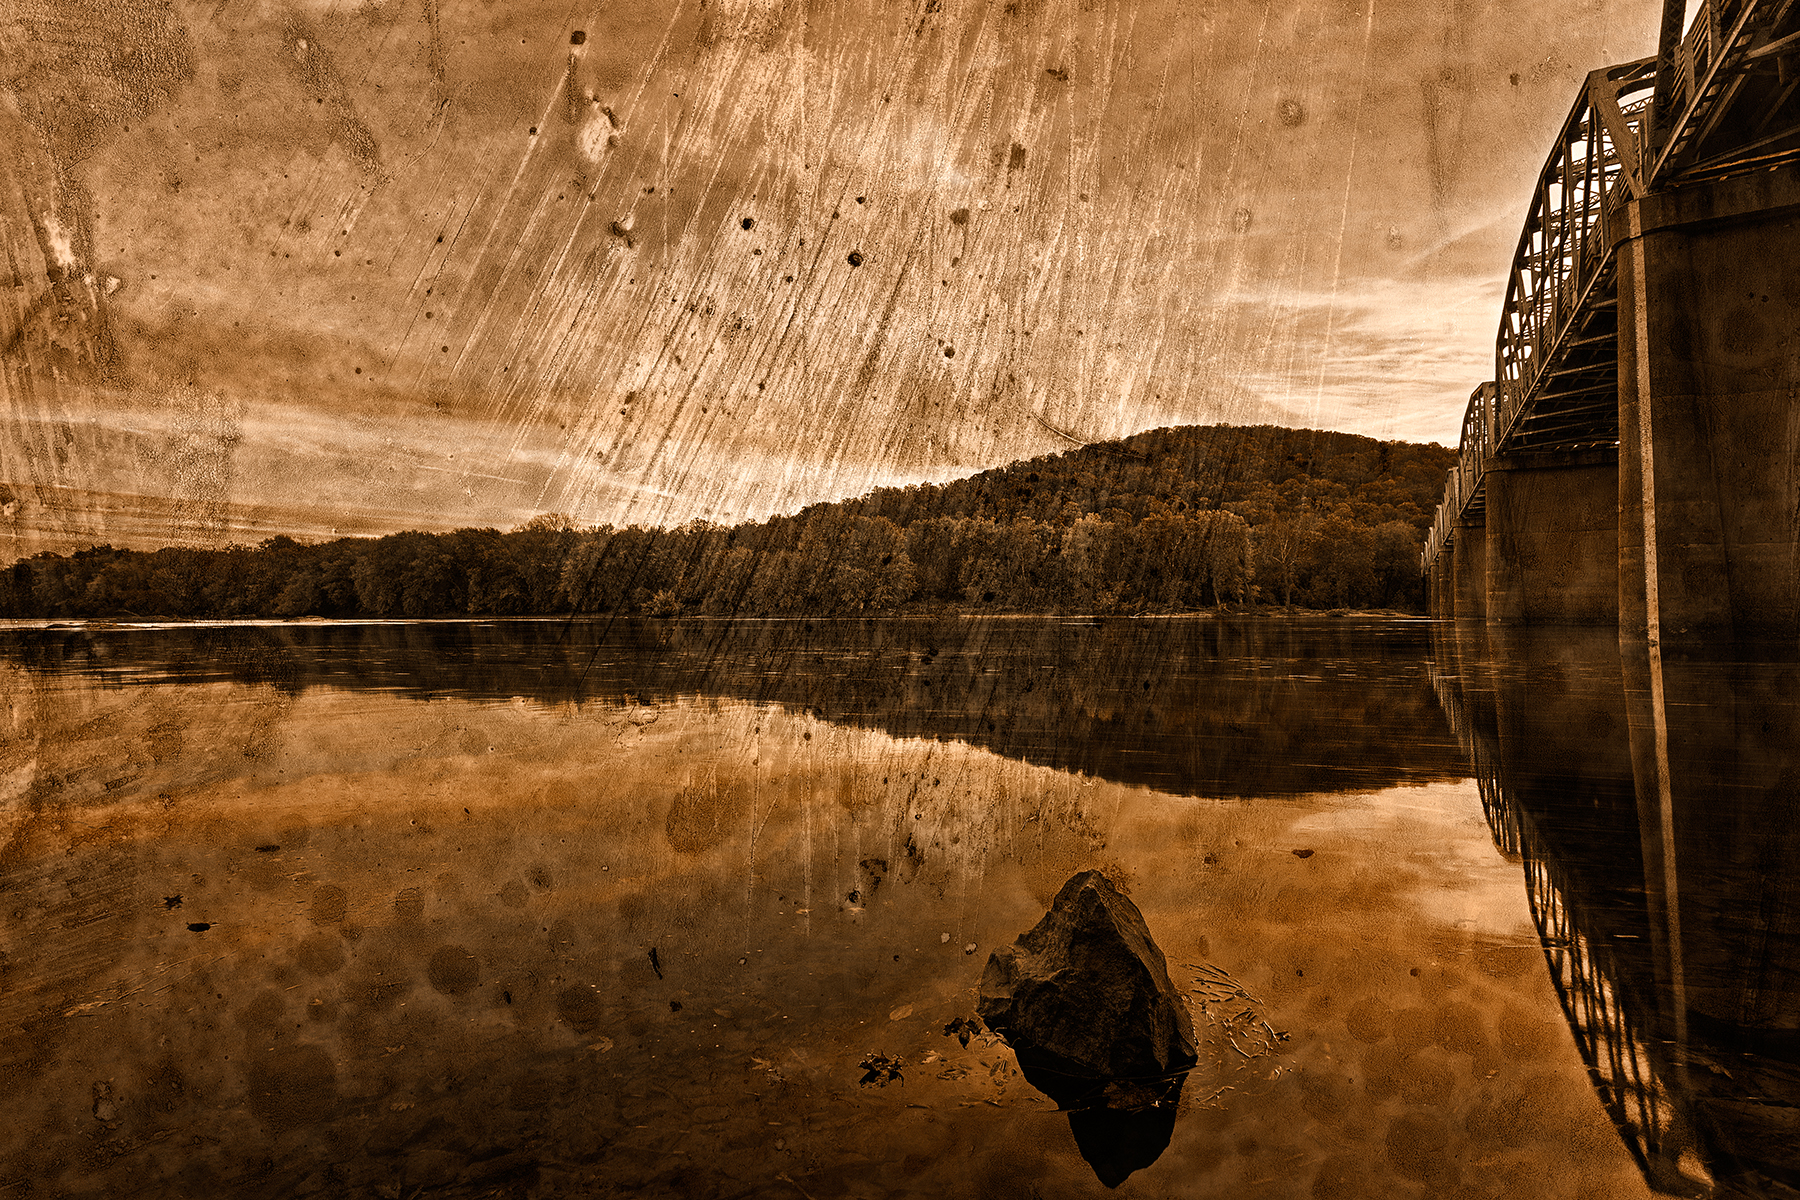 Point of rocks - sepia grunge photo